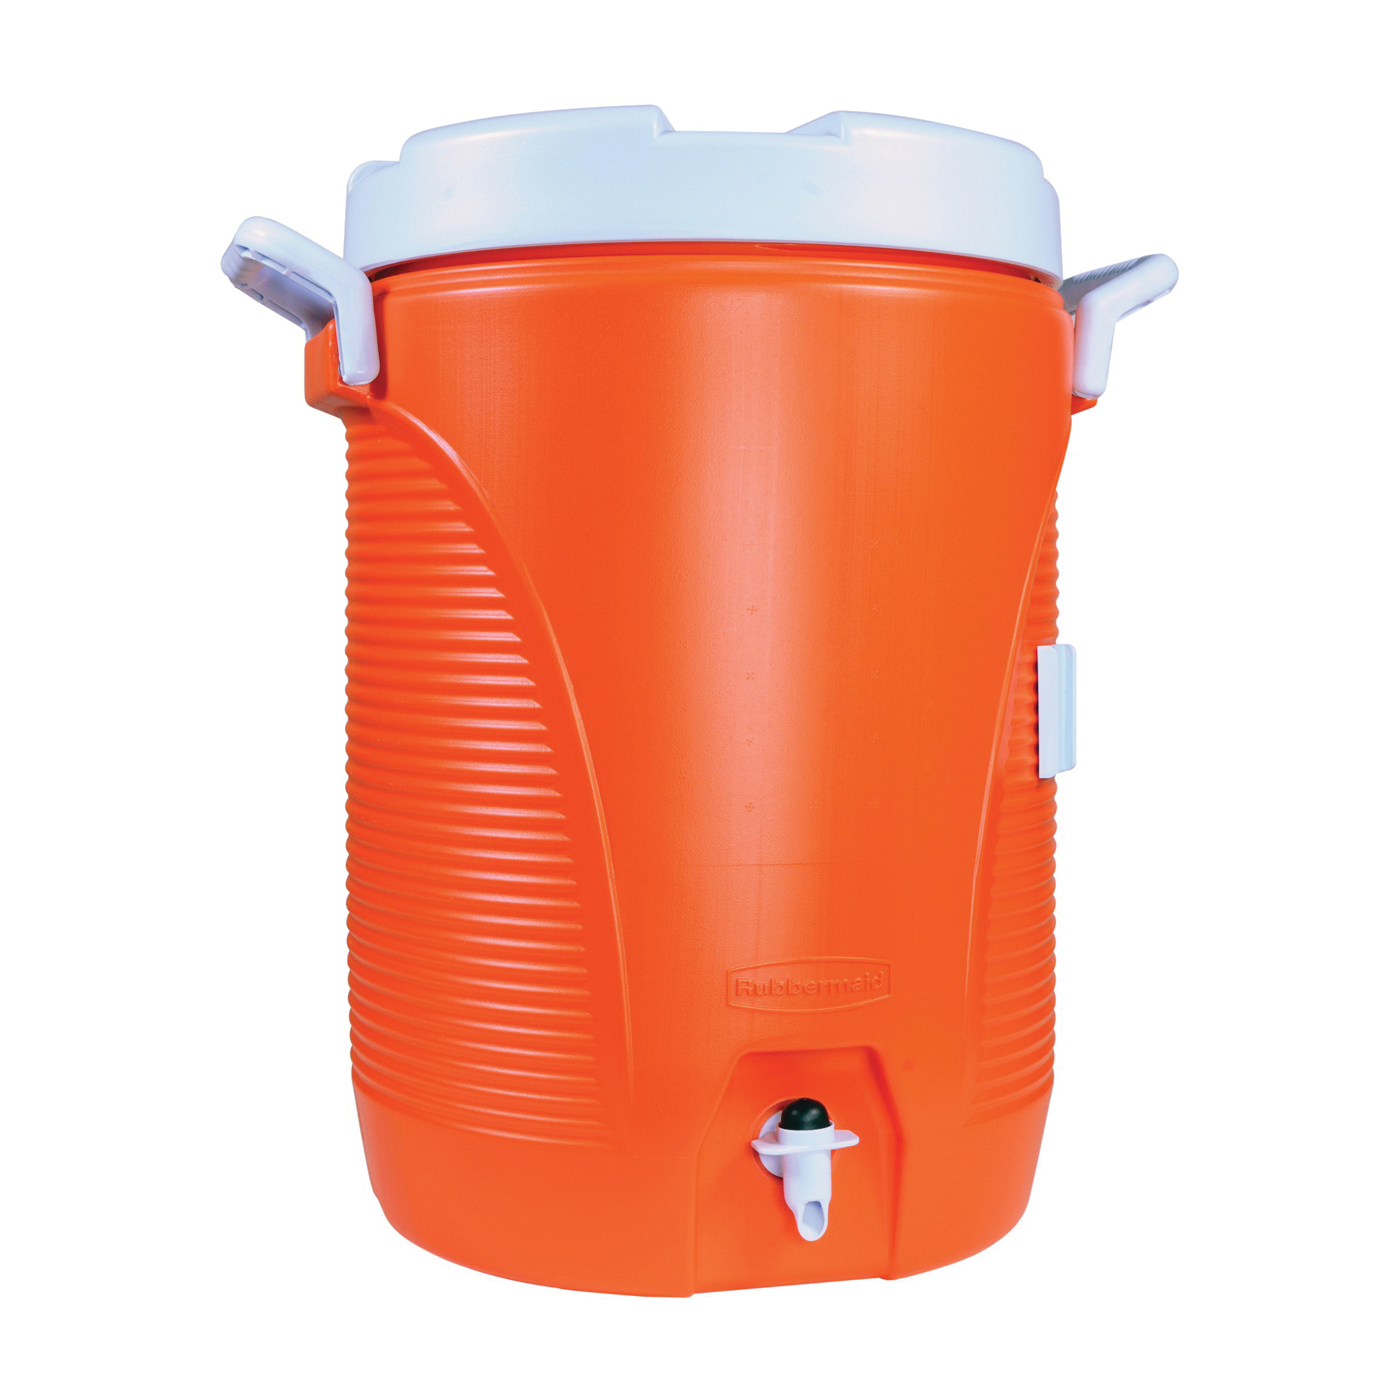 Picture of Rubbermaid 1840999 Water Cooler, 5 gal Cooler, Polyethylene, Orange